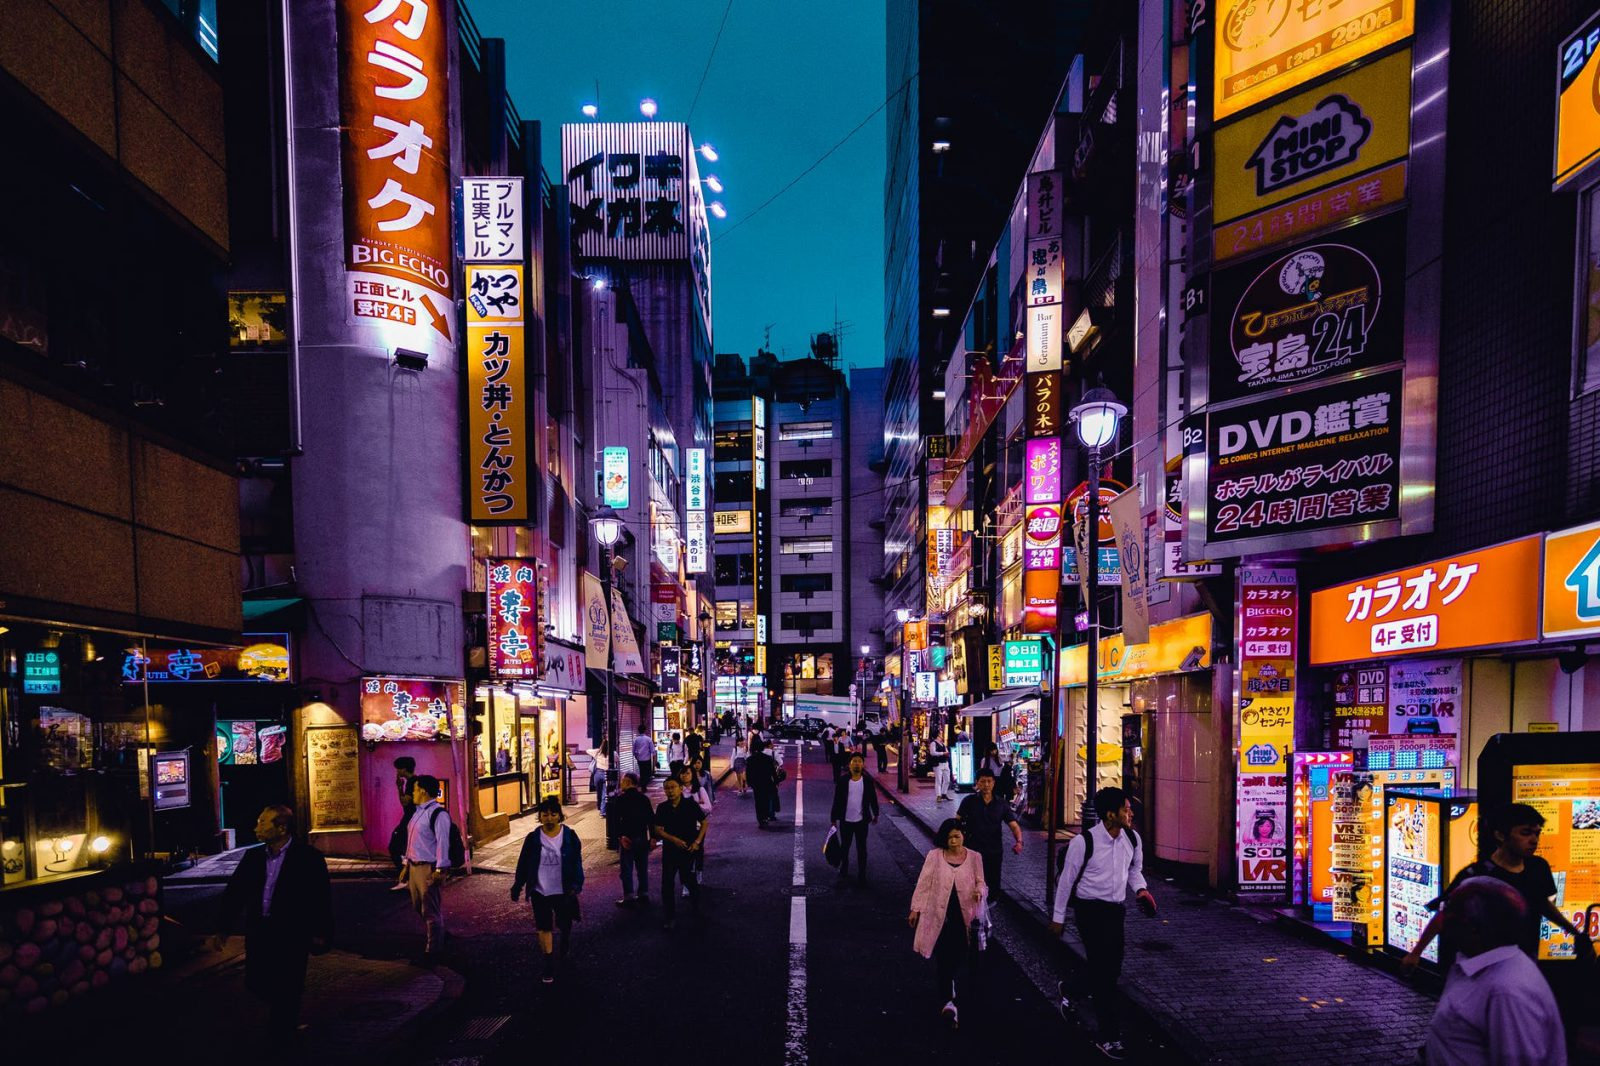 Flight Deal Round Trip From Los Angeles Area to Tokyo